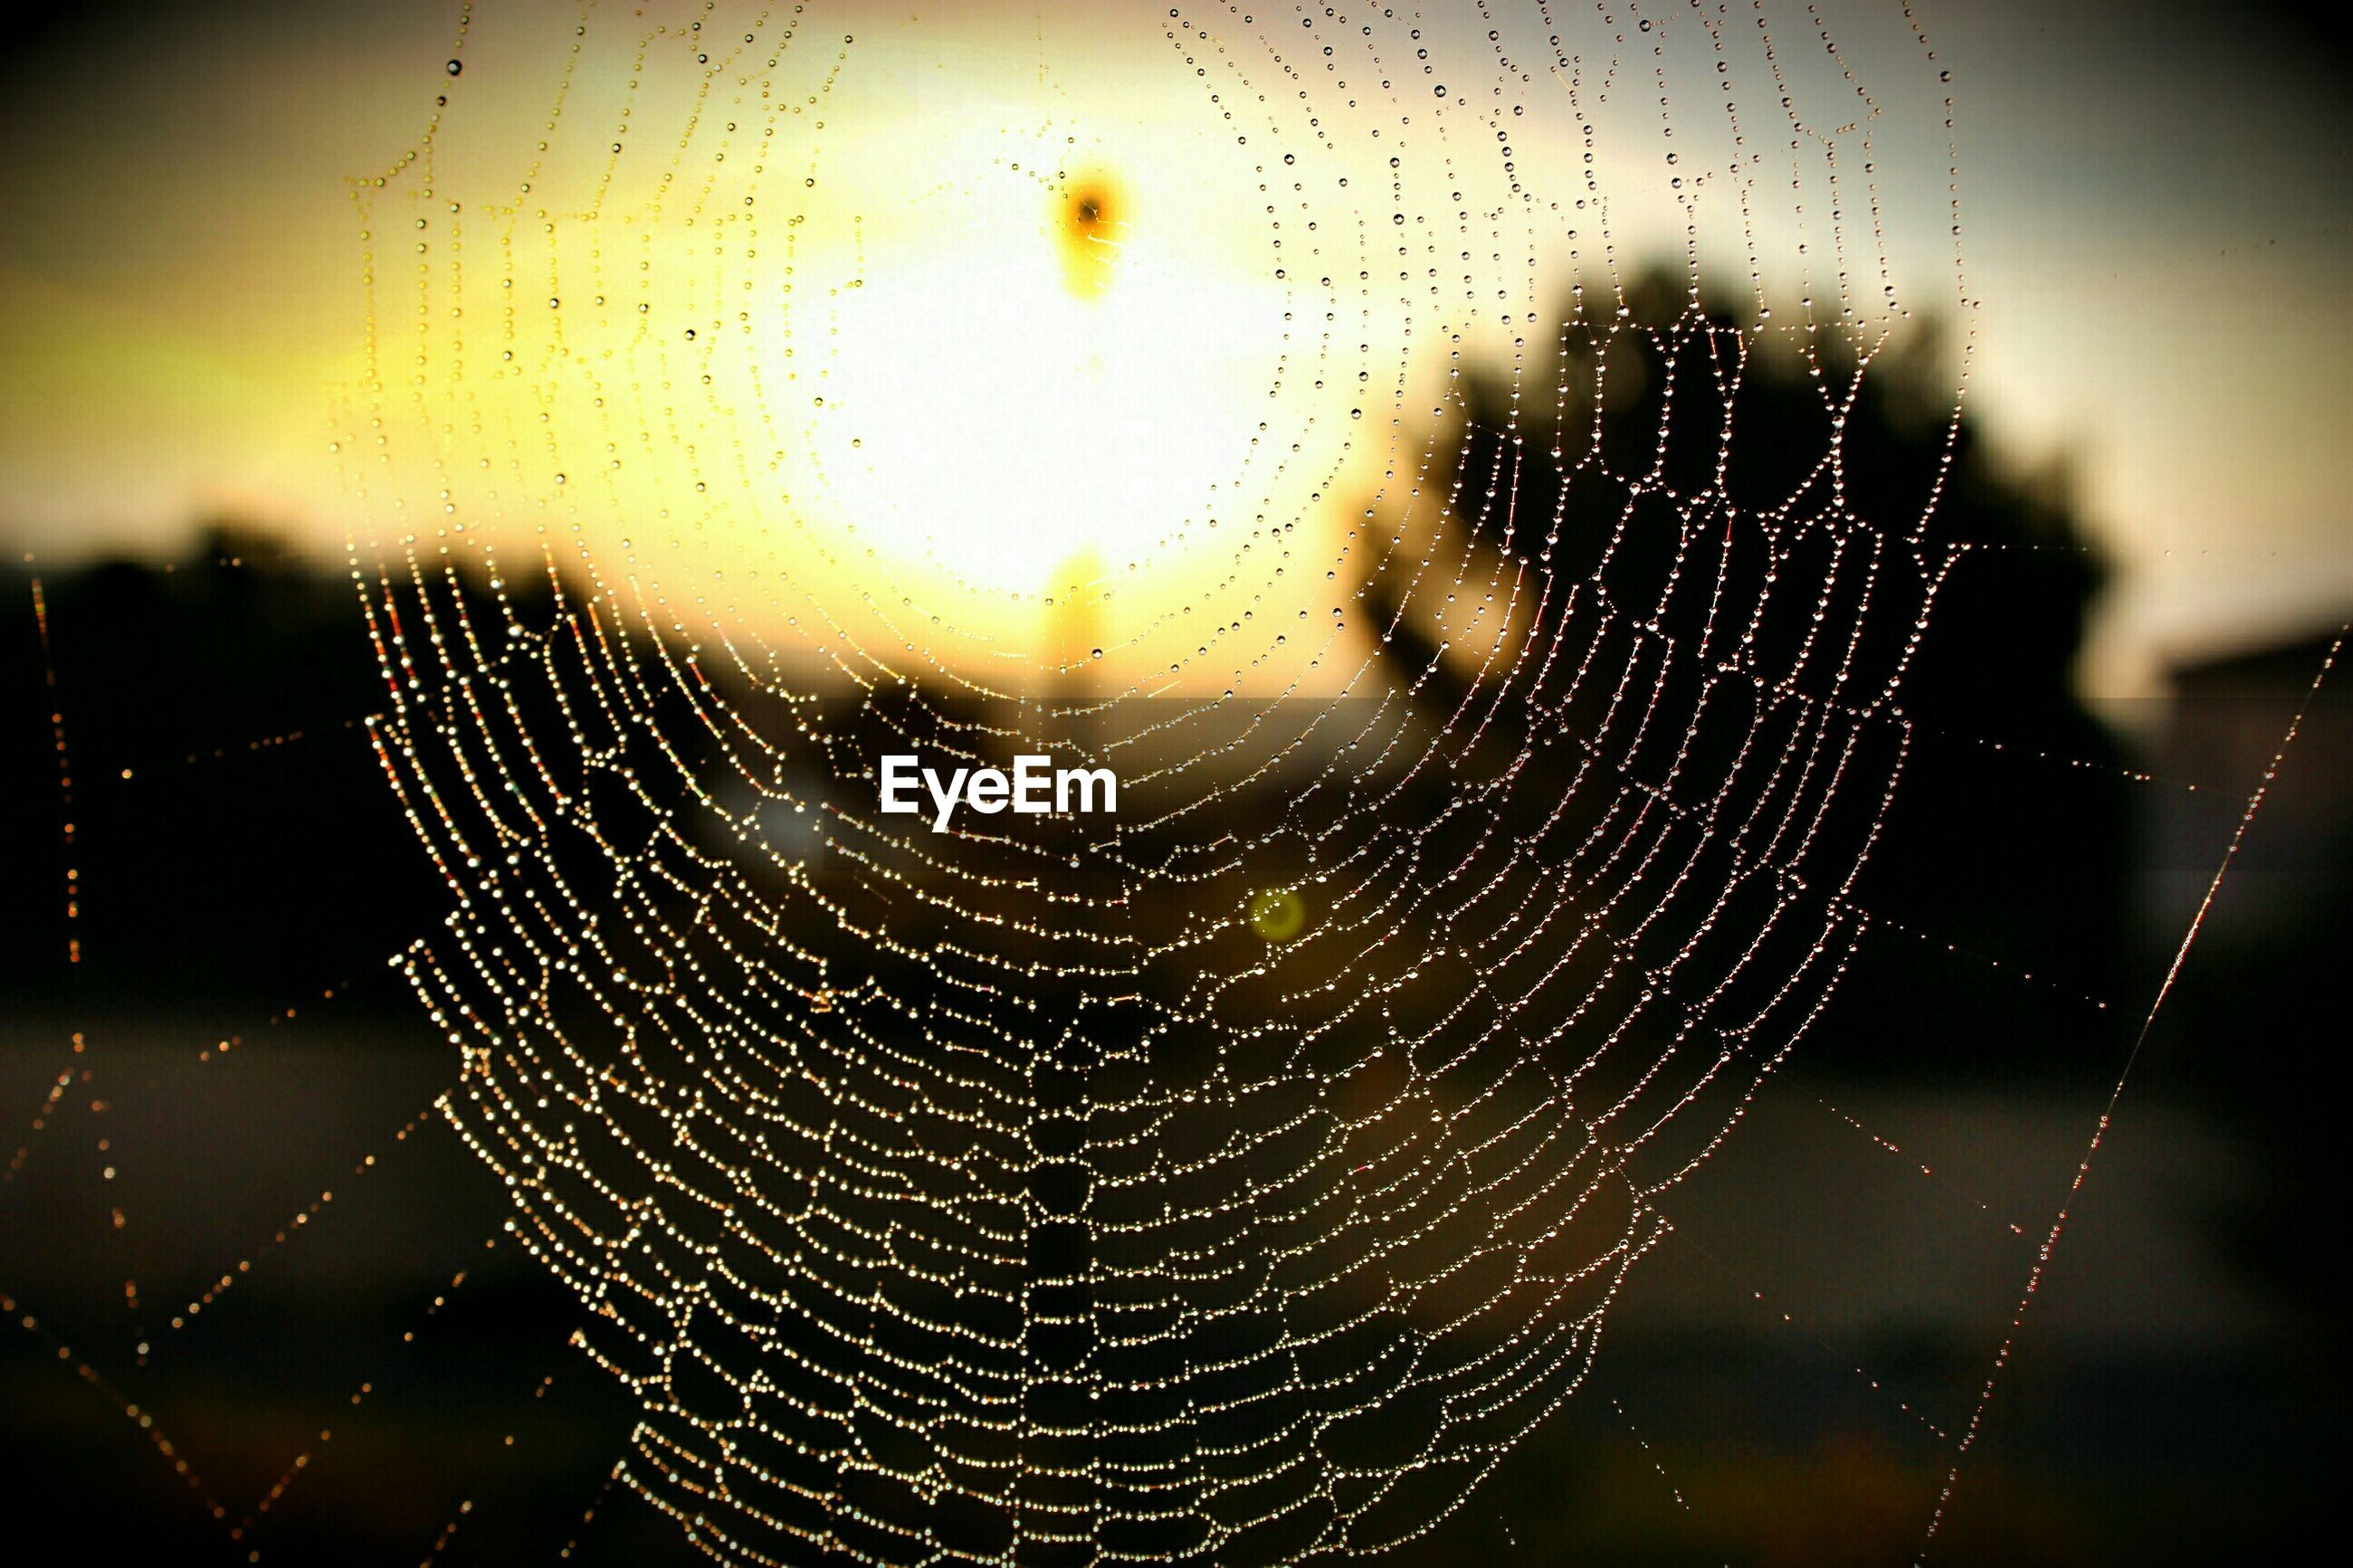 Close-up of wet spider web against sky during sunset